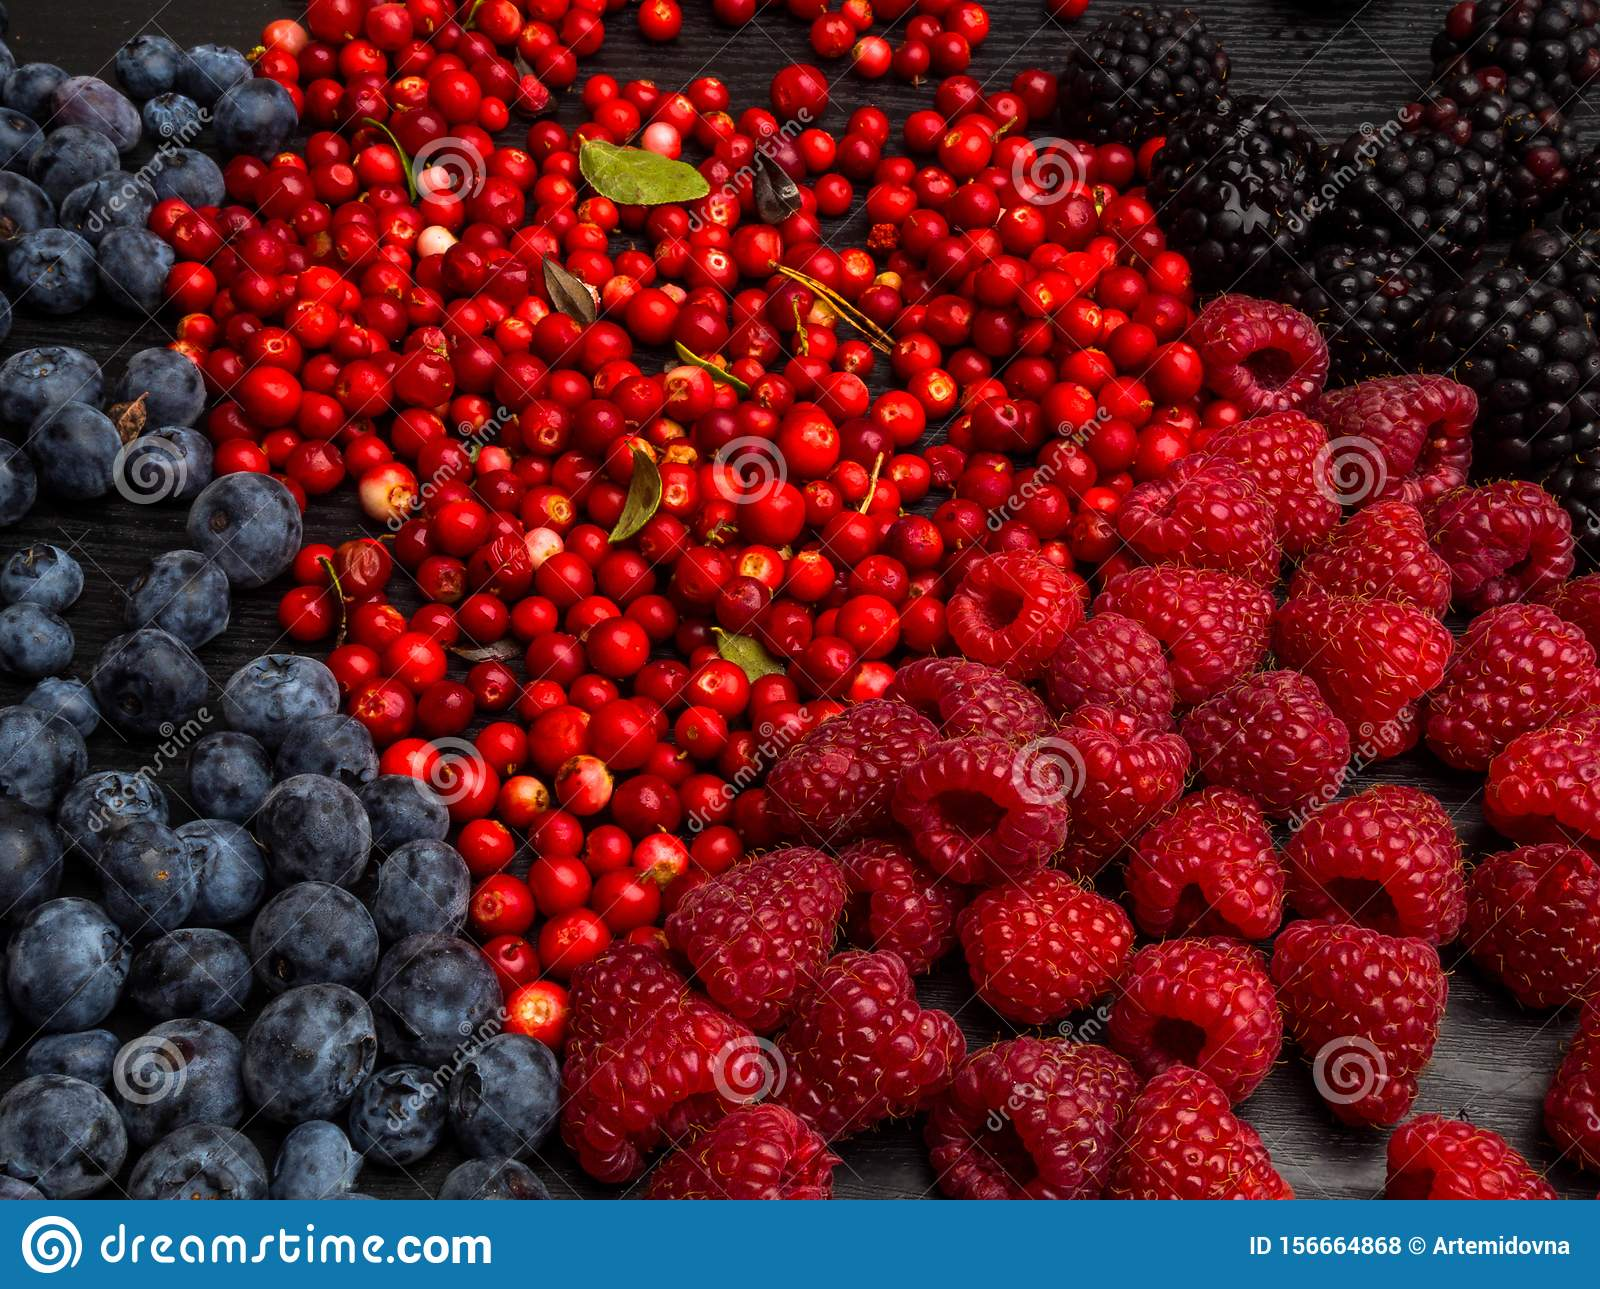 Super Antioxidants Superfood Mix Of Fresh Berries Rich With Resveratrol Vitamins Raw Food Ingredients Nutrition Background Stock Photo Image Of Antioxidants Ingredient 156664868